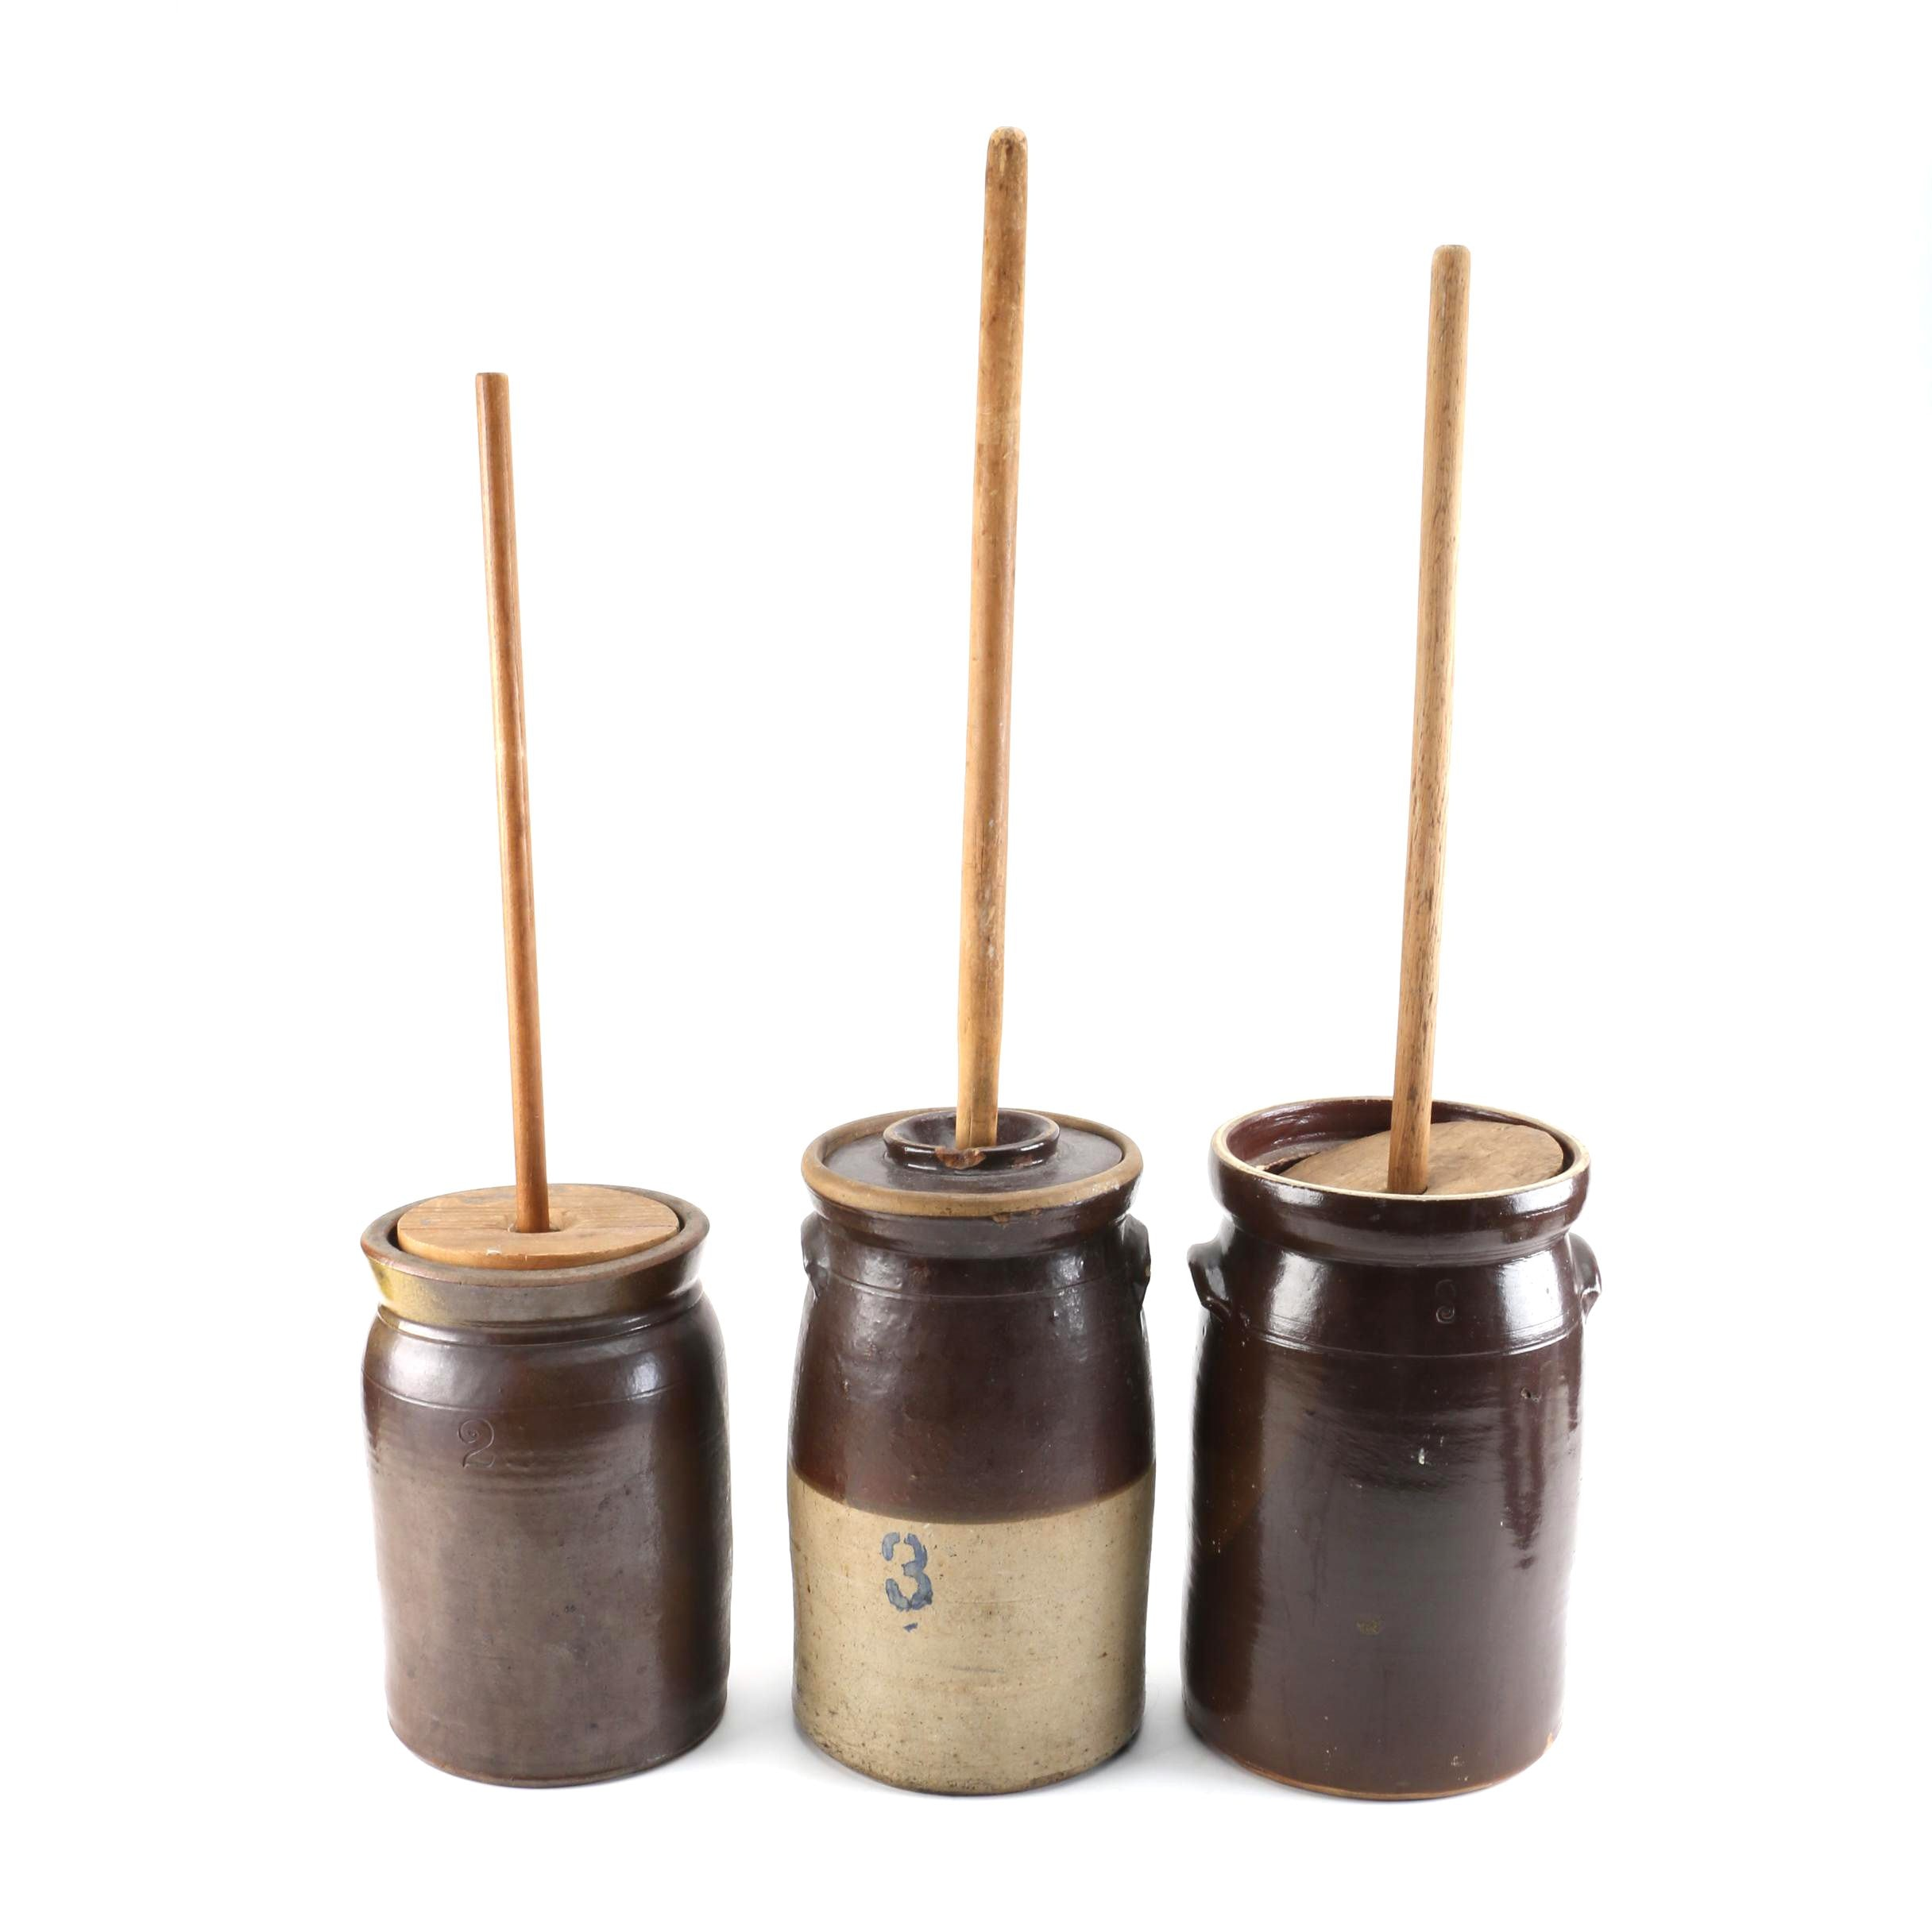 Vintage Stoneware Butter Churns with Lids and Paddles